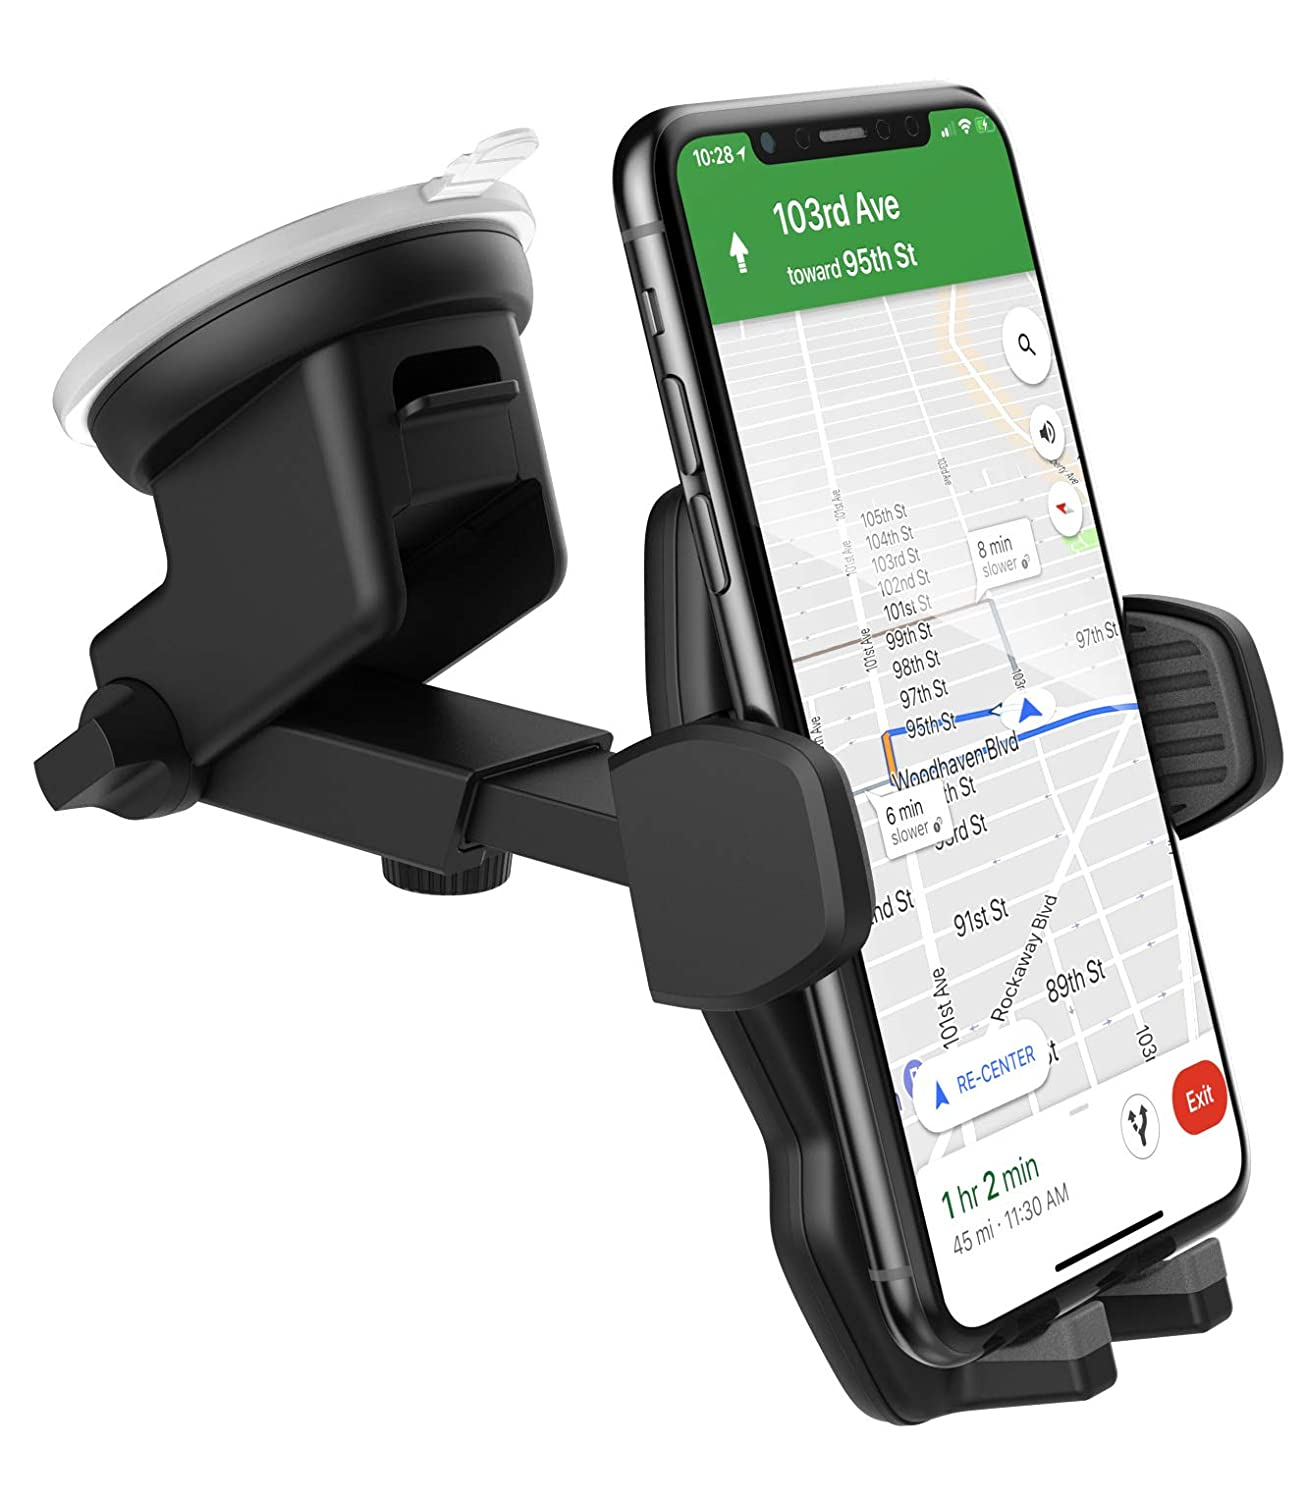 timeless design 1484d 1ae71 Encased Car Mount iPhone X/iPhone Xs/iPhone Xr Phone Holder - Case Friendly  Adjustable Dock (Vent/Windshield/Dashboard)